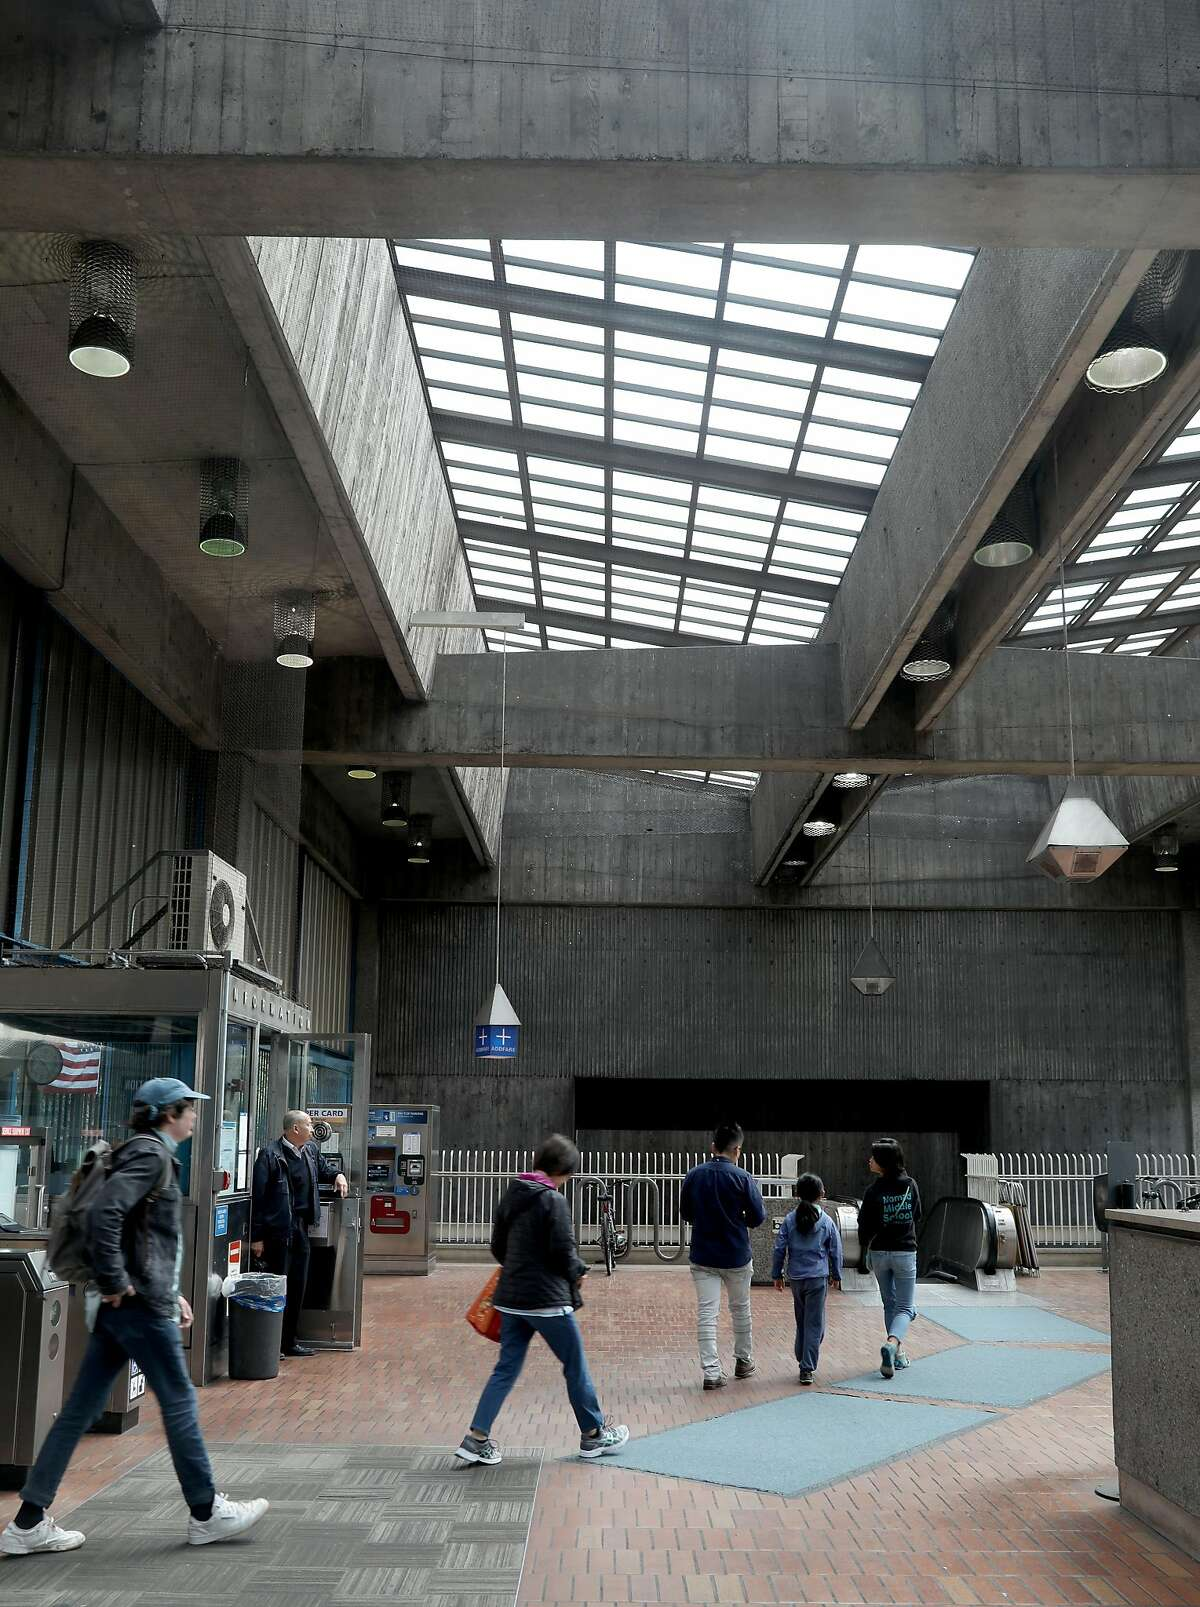 Commuters enter the Glen Park BART station. It was designed by a noted architect, Ernest Born, and follows the precepts of Brutalism, but does it deserve its recent nomination for the National Register of Historic Places?